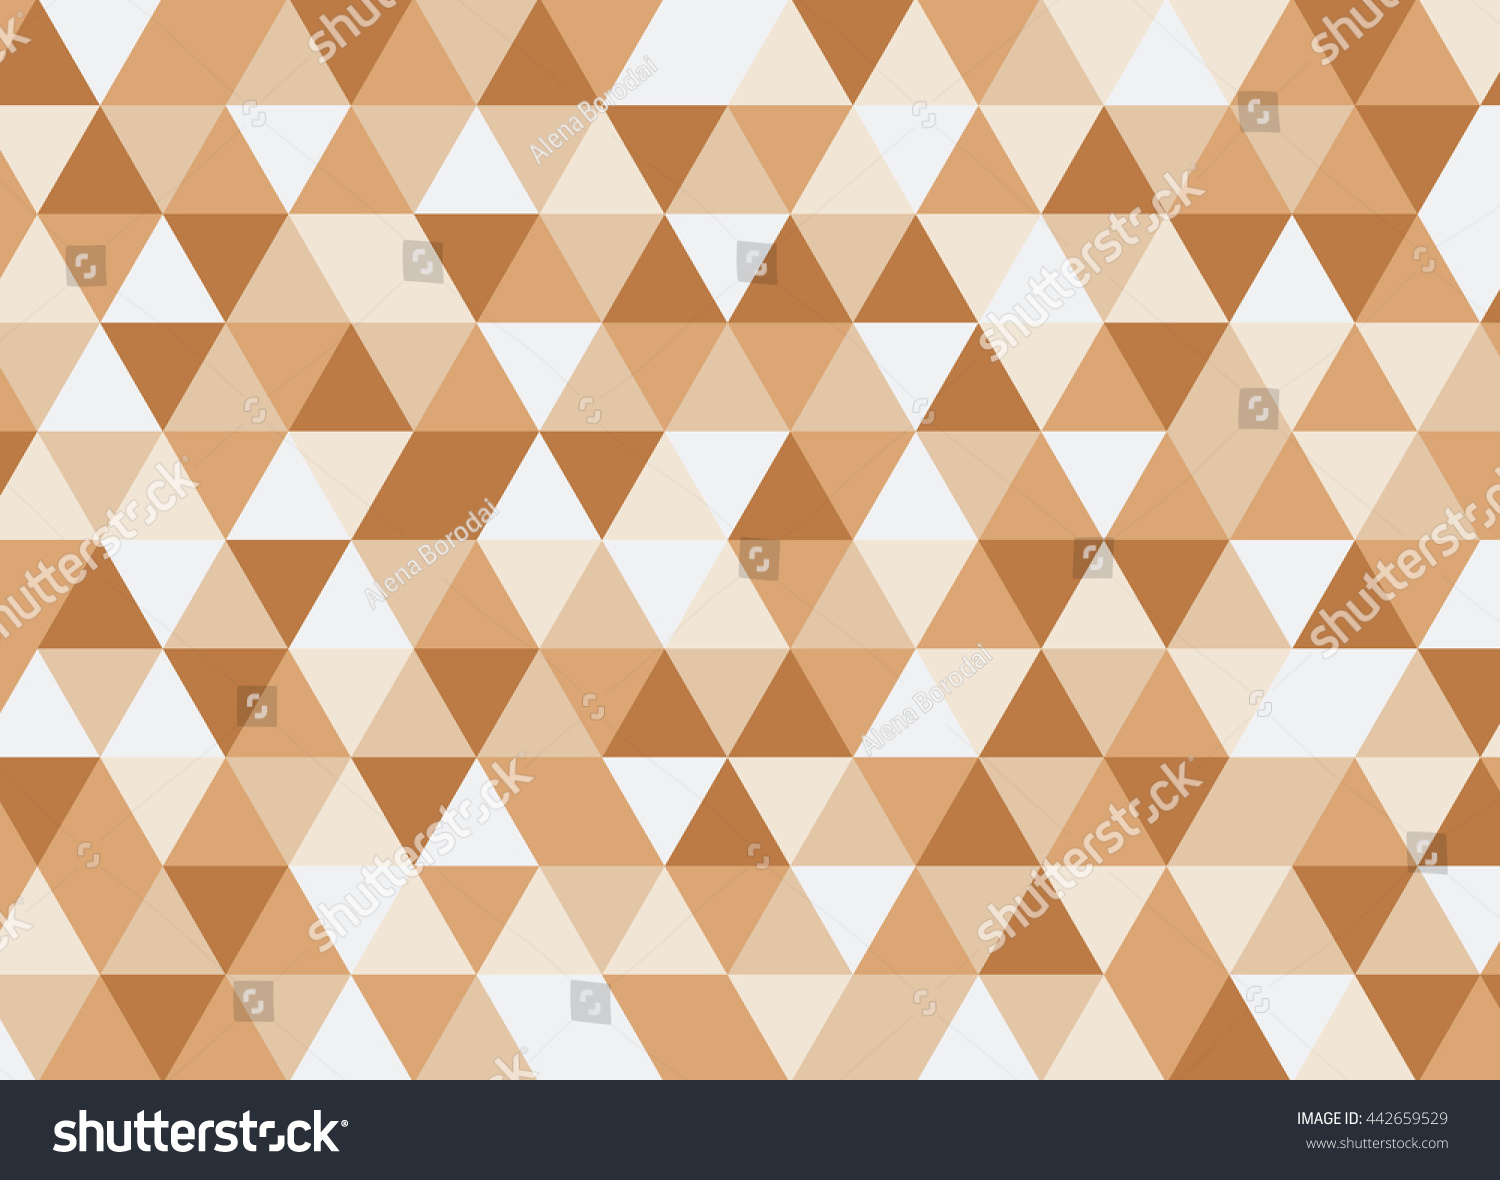 stock vector geometric background - photo #49